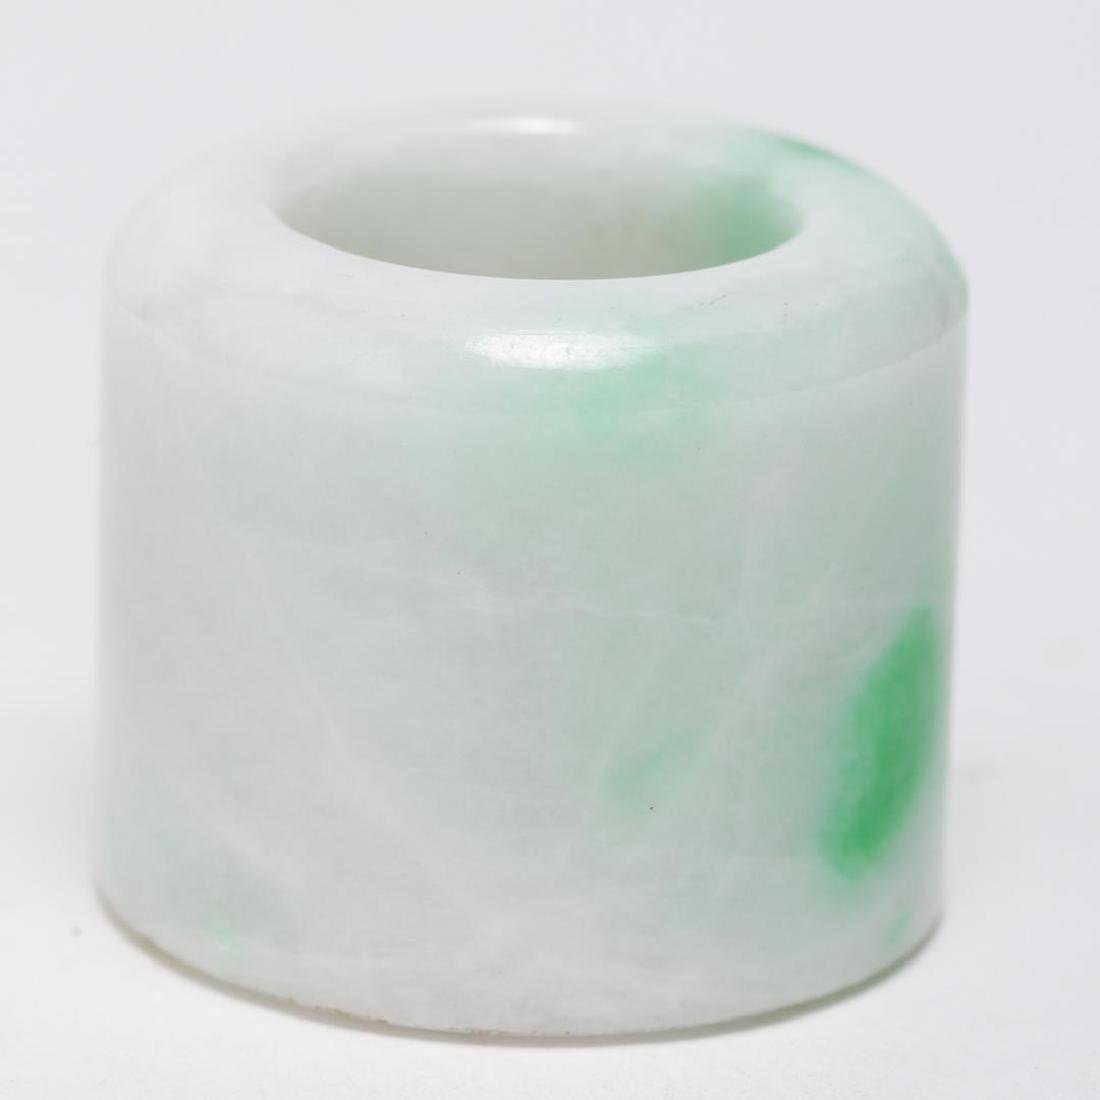 Chinese Mottled Jade Archer's or Thumb Ring, Man's - 2